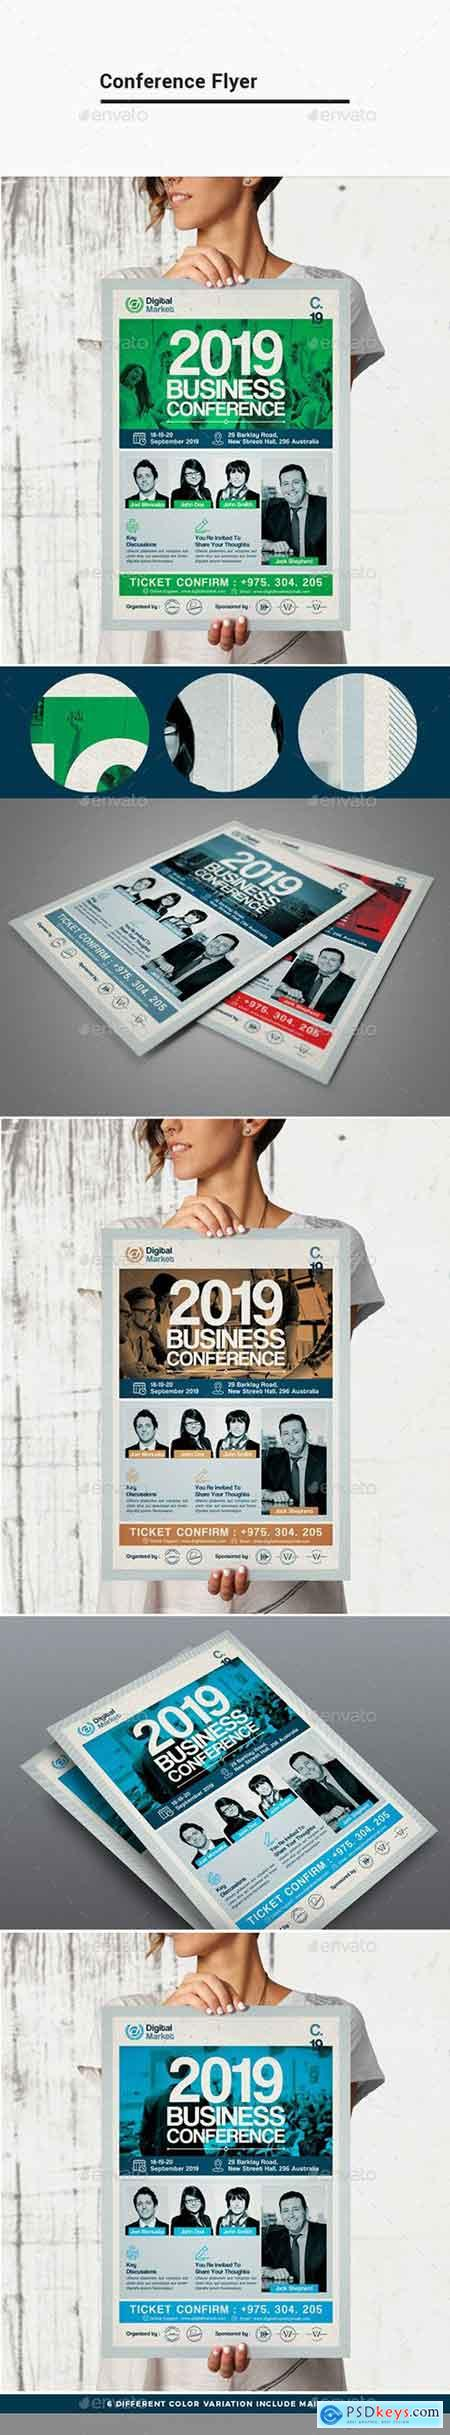 Graphicriver Conference Flyer Template